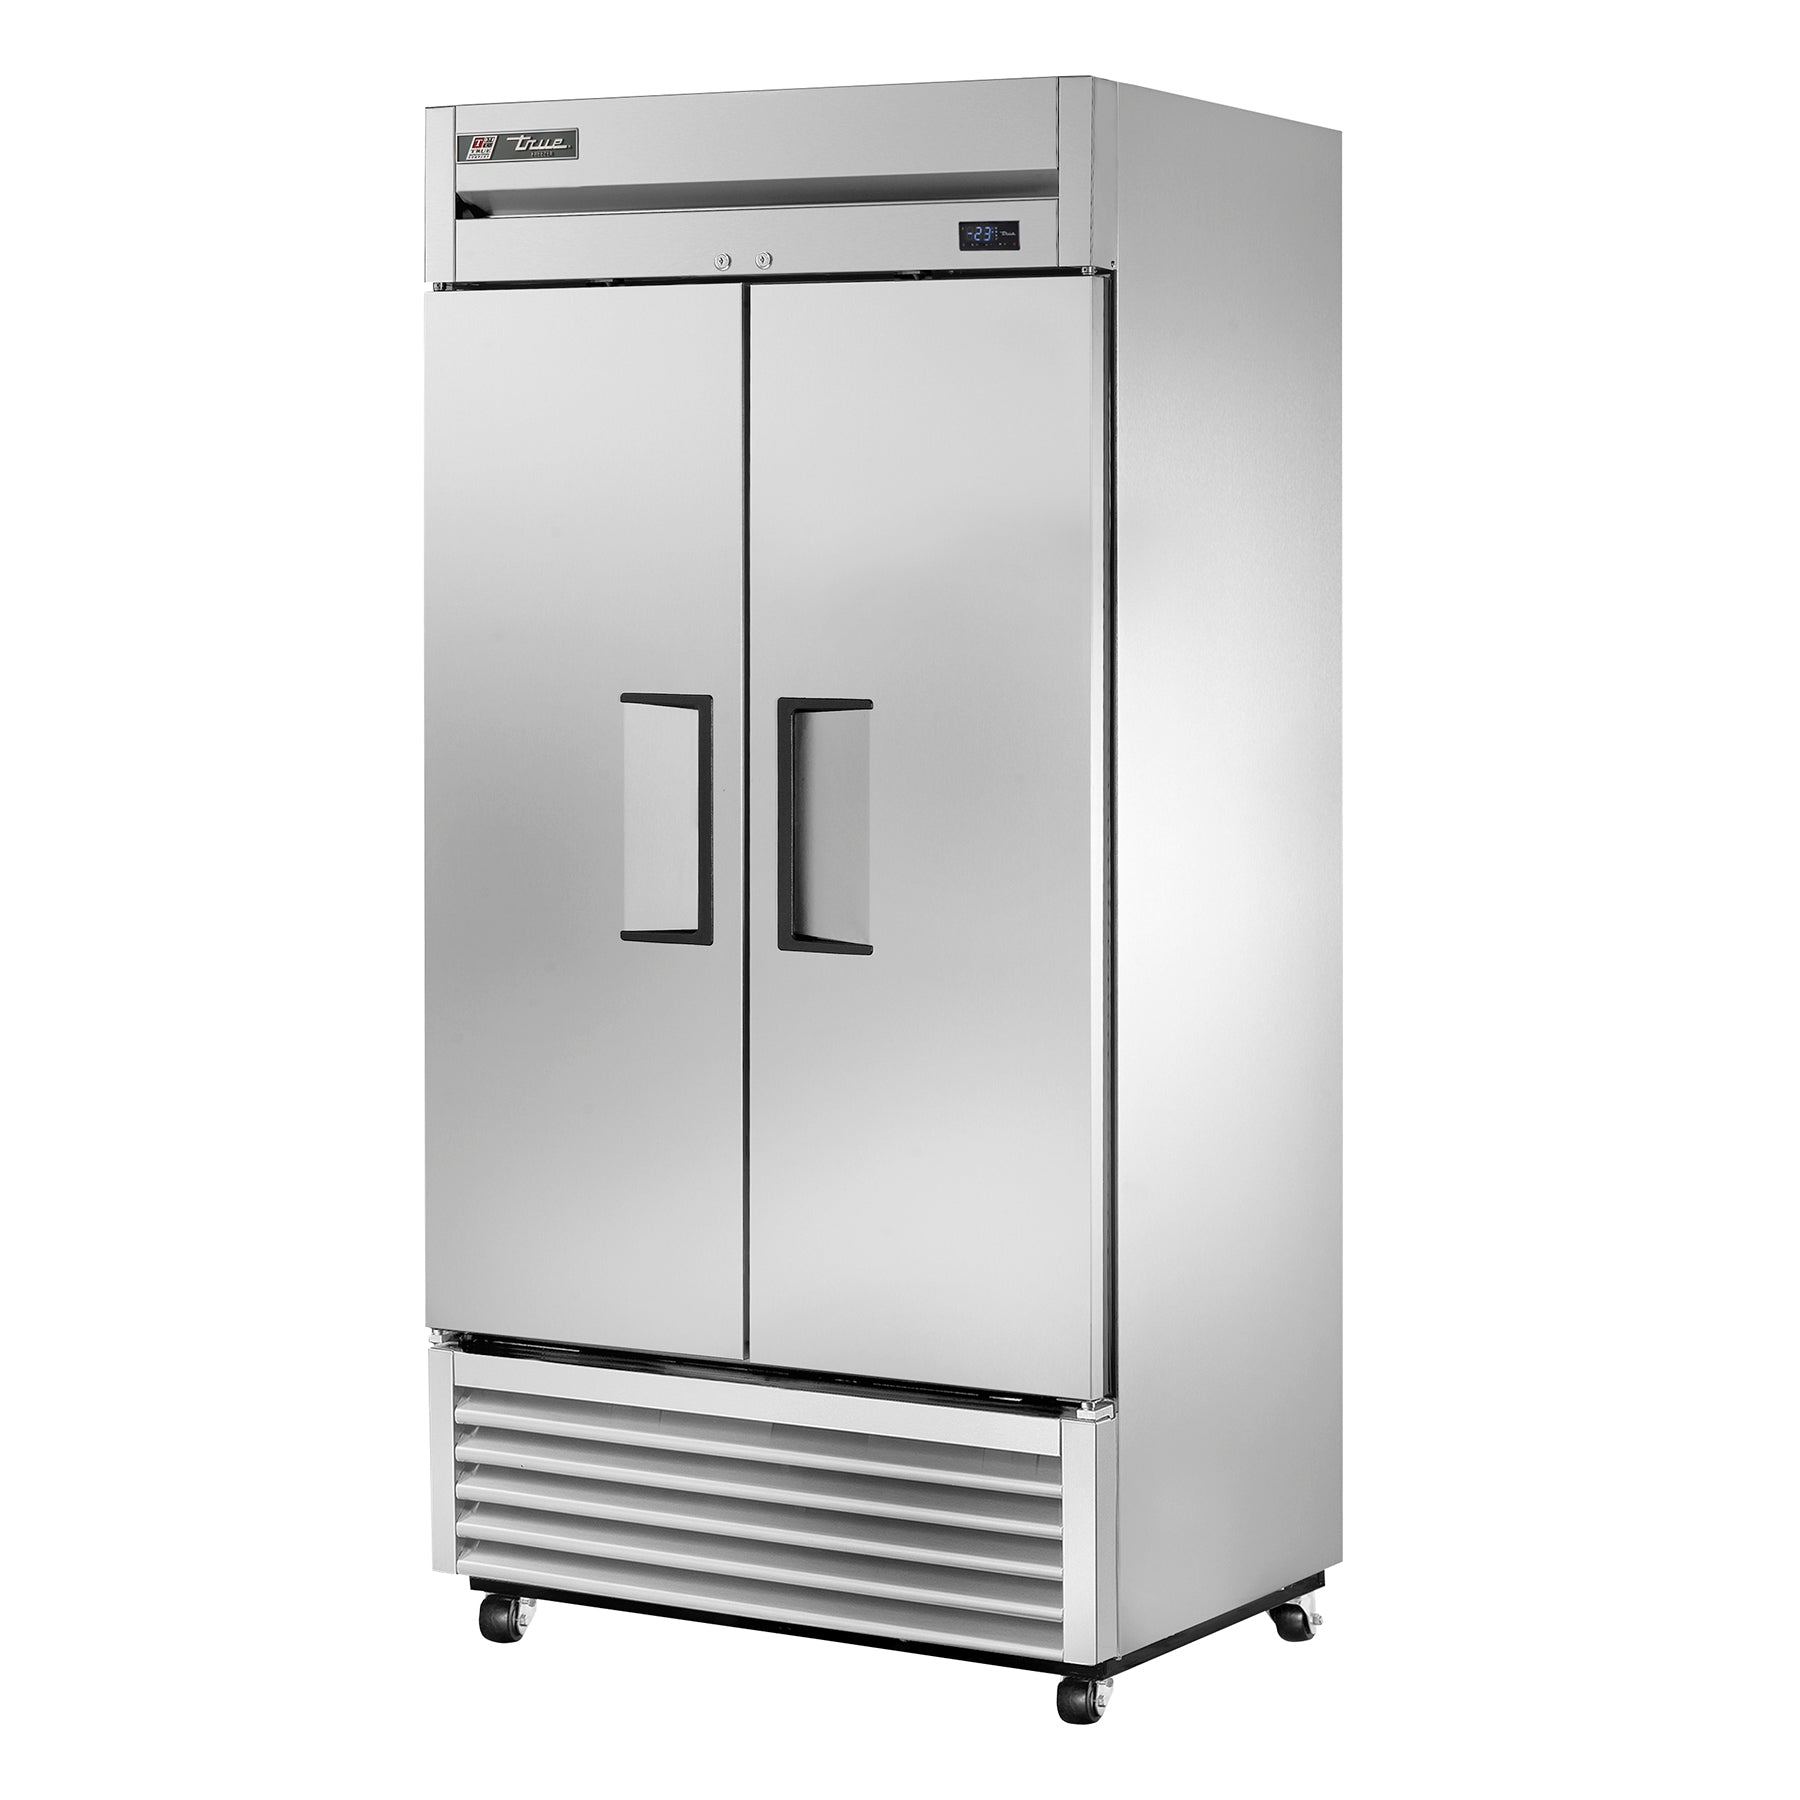 636 LTR SOLID DOOR FREEZER - T-35-F